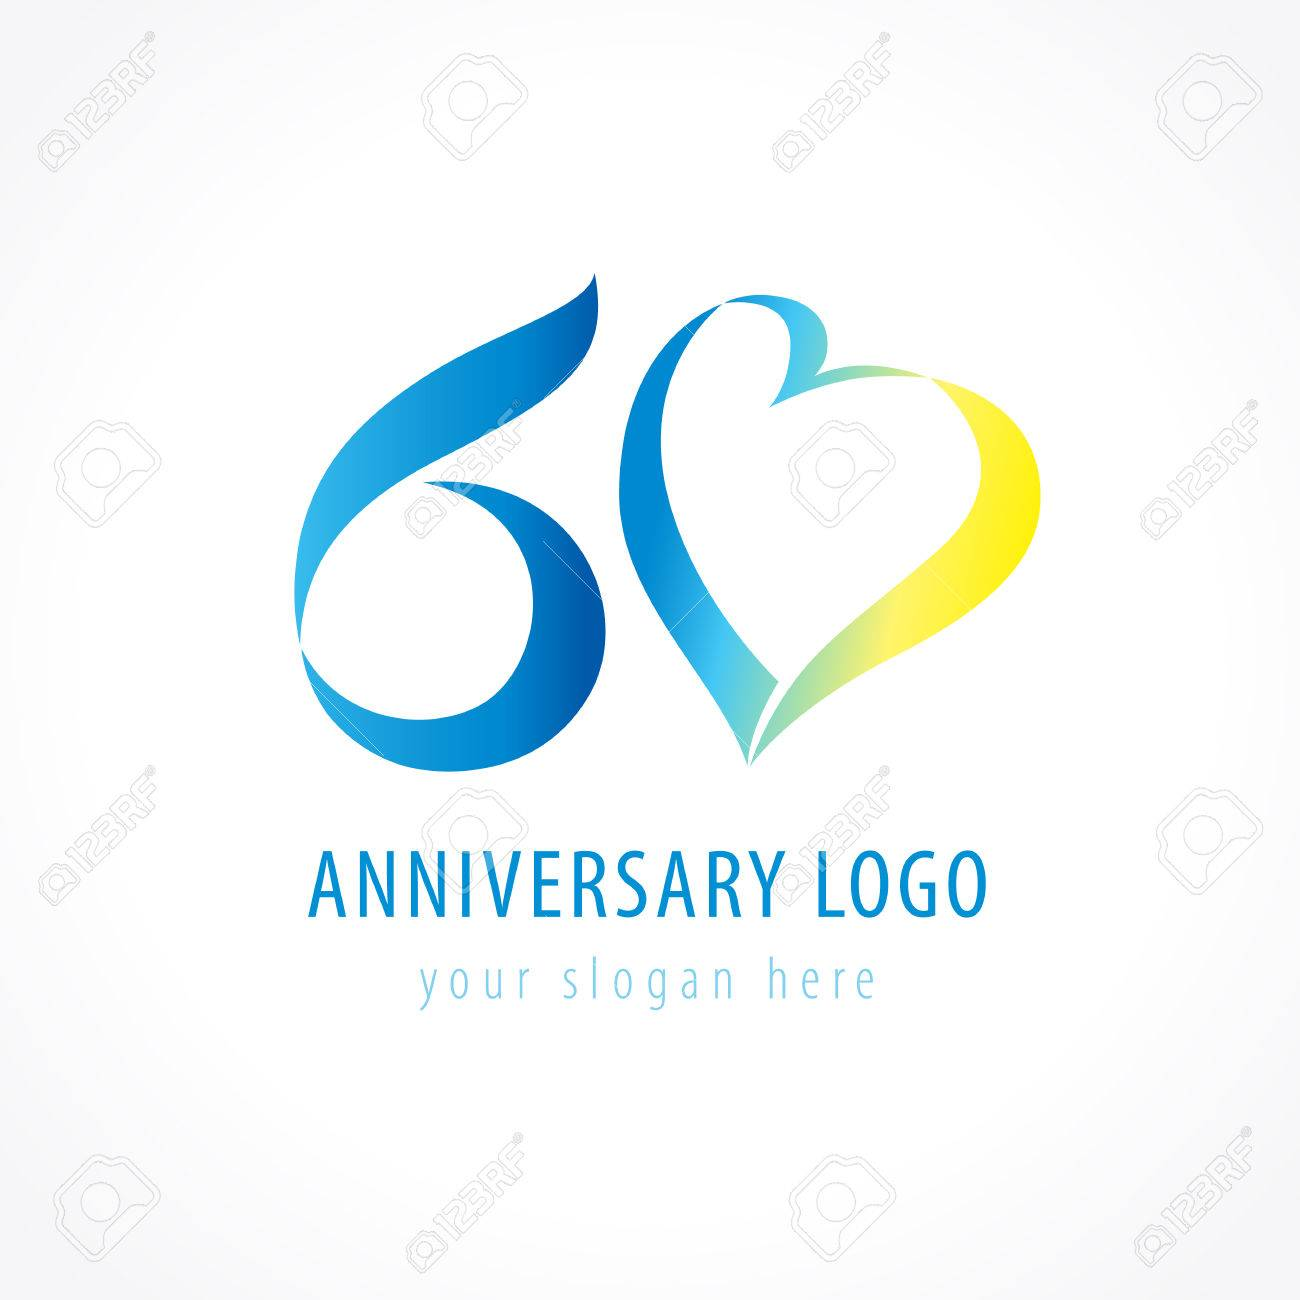 Anniversary 60 years old hearts celebrating vector digit logo. - 73957346